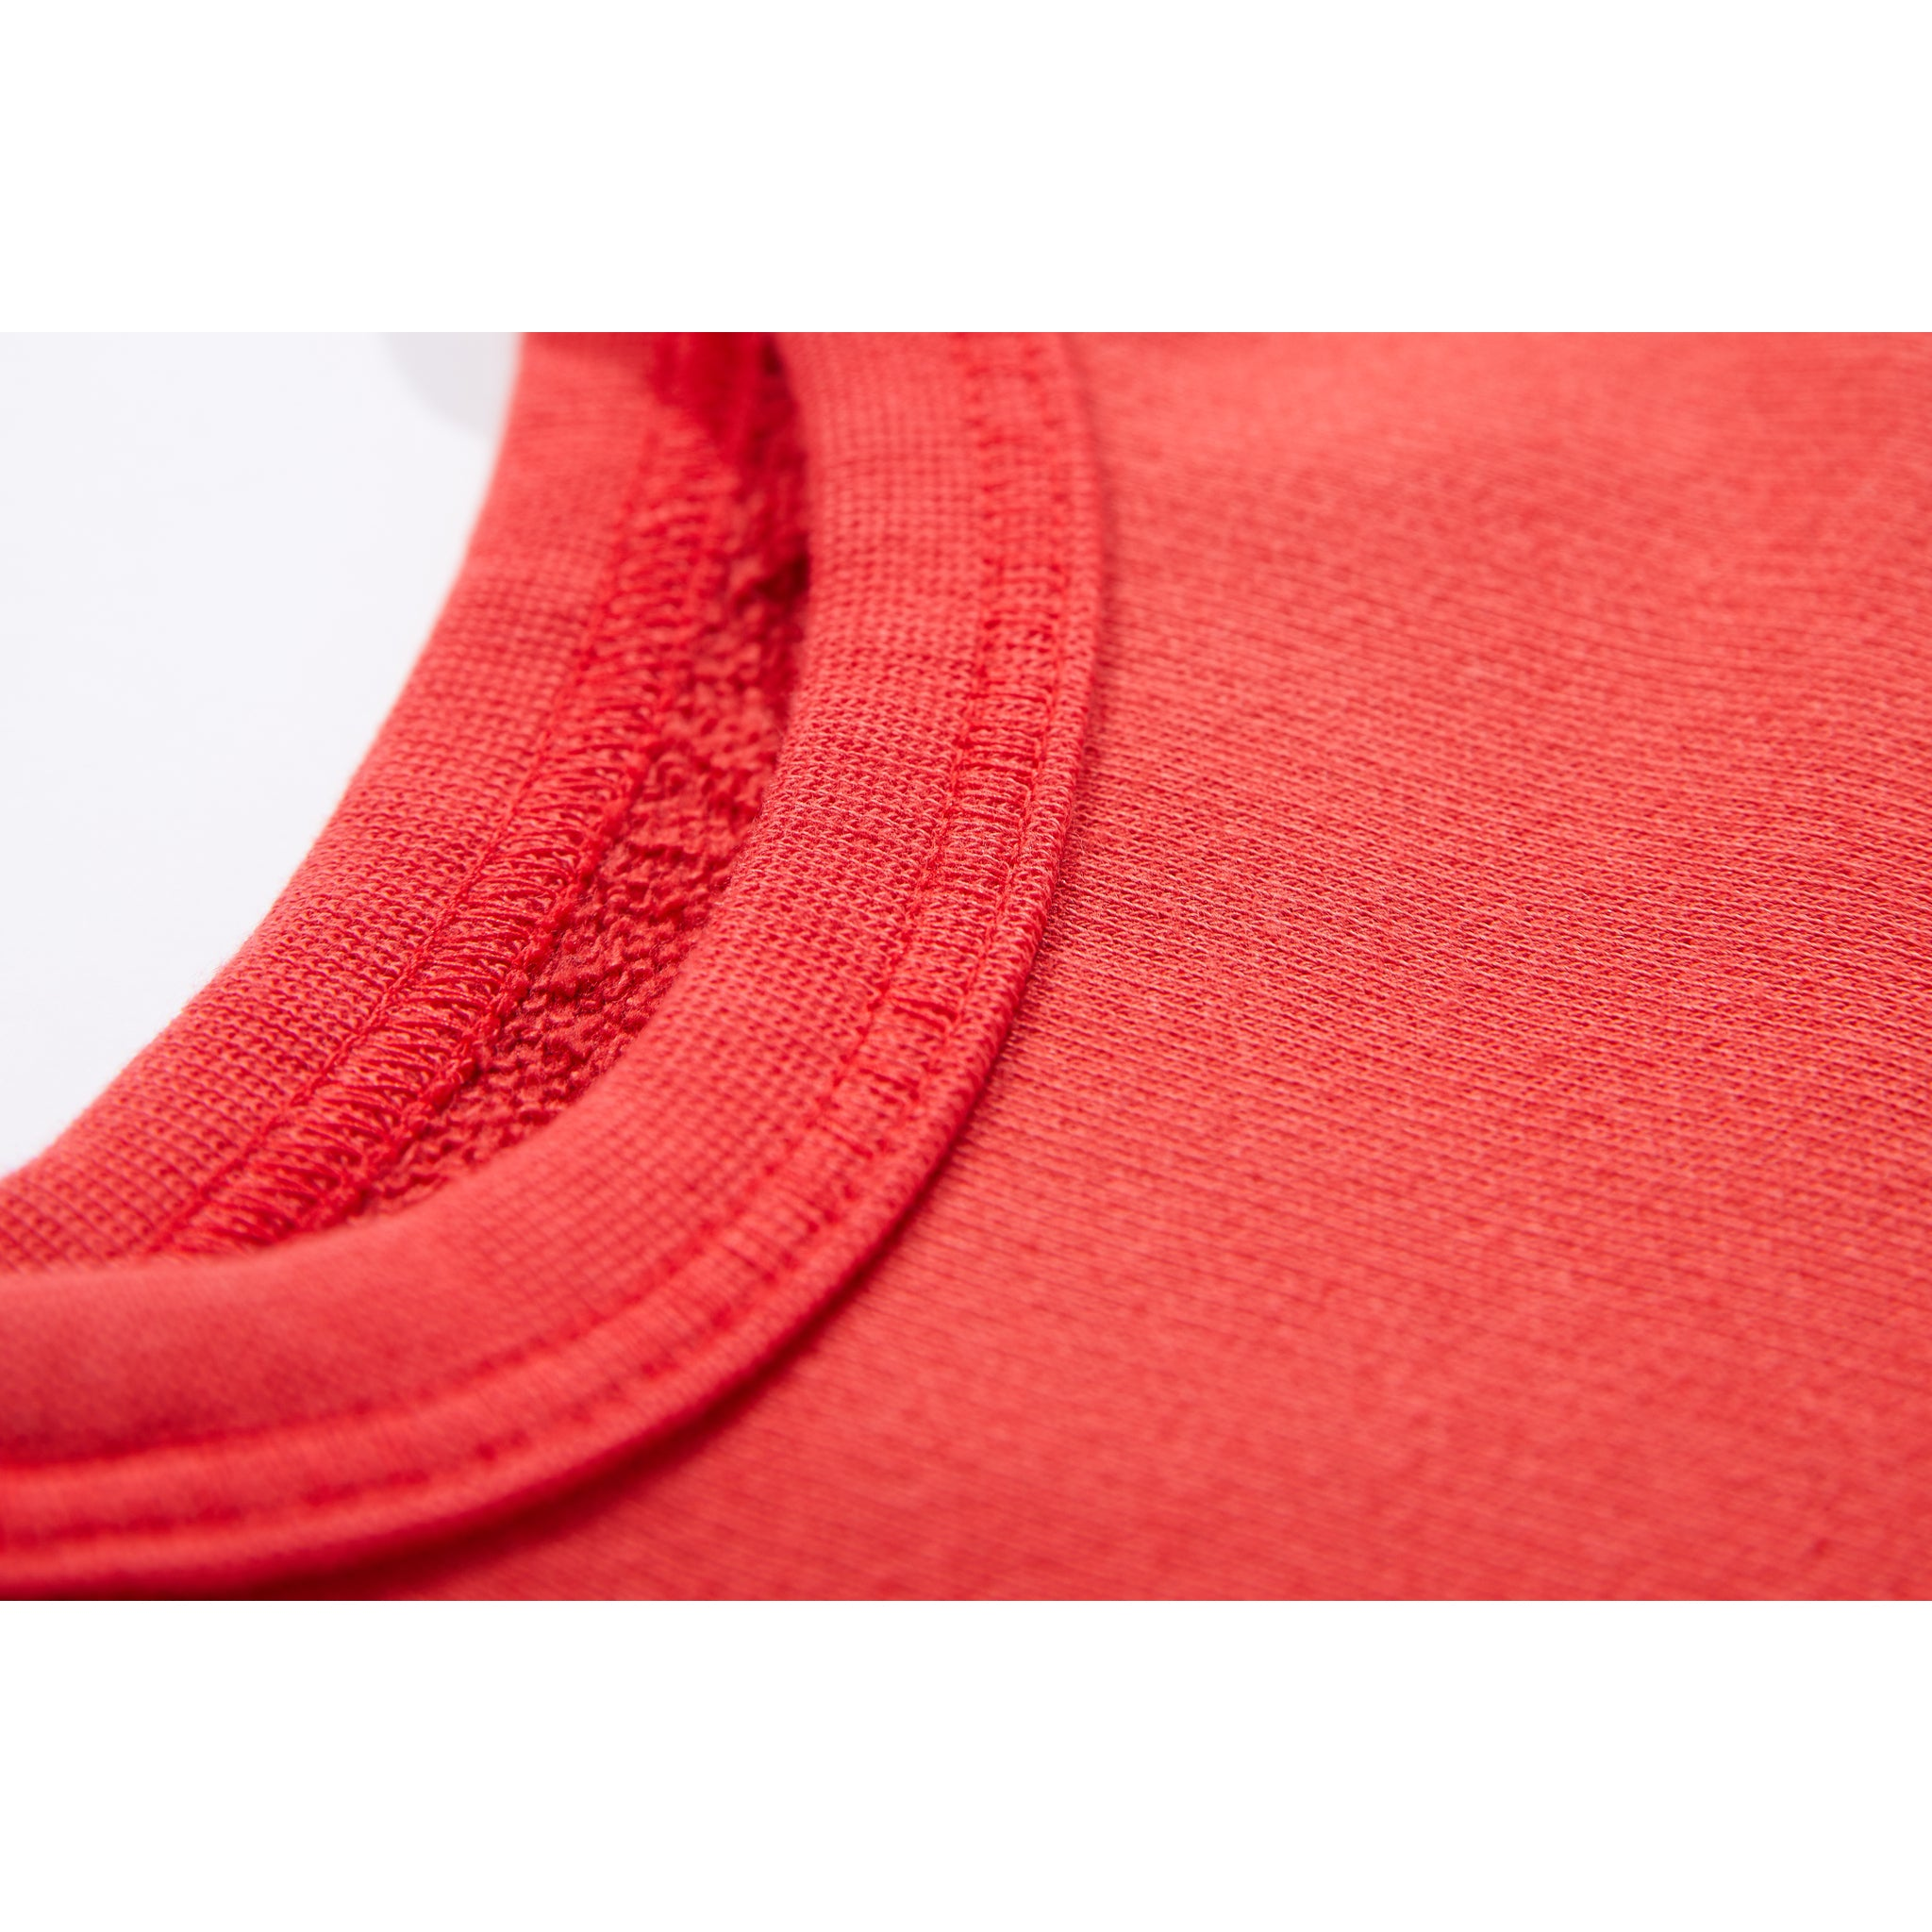 BRIAN Poppy Red - Crew Neck Sweatshirt 4